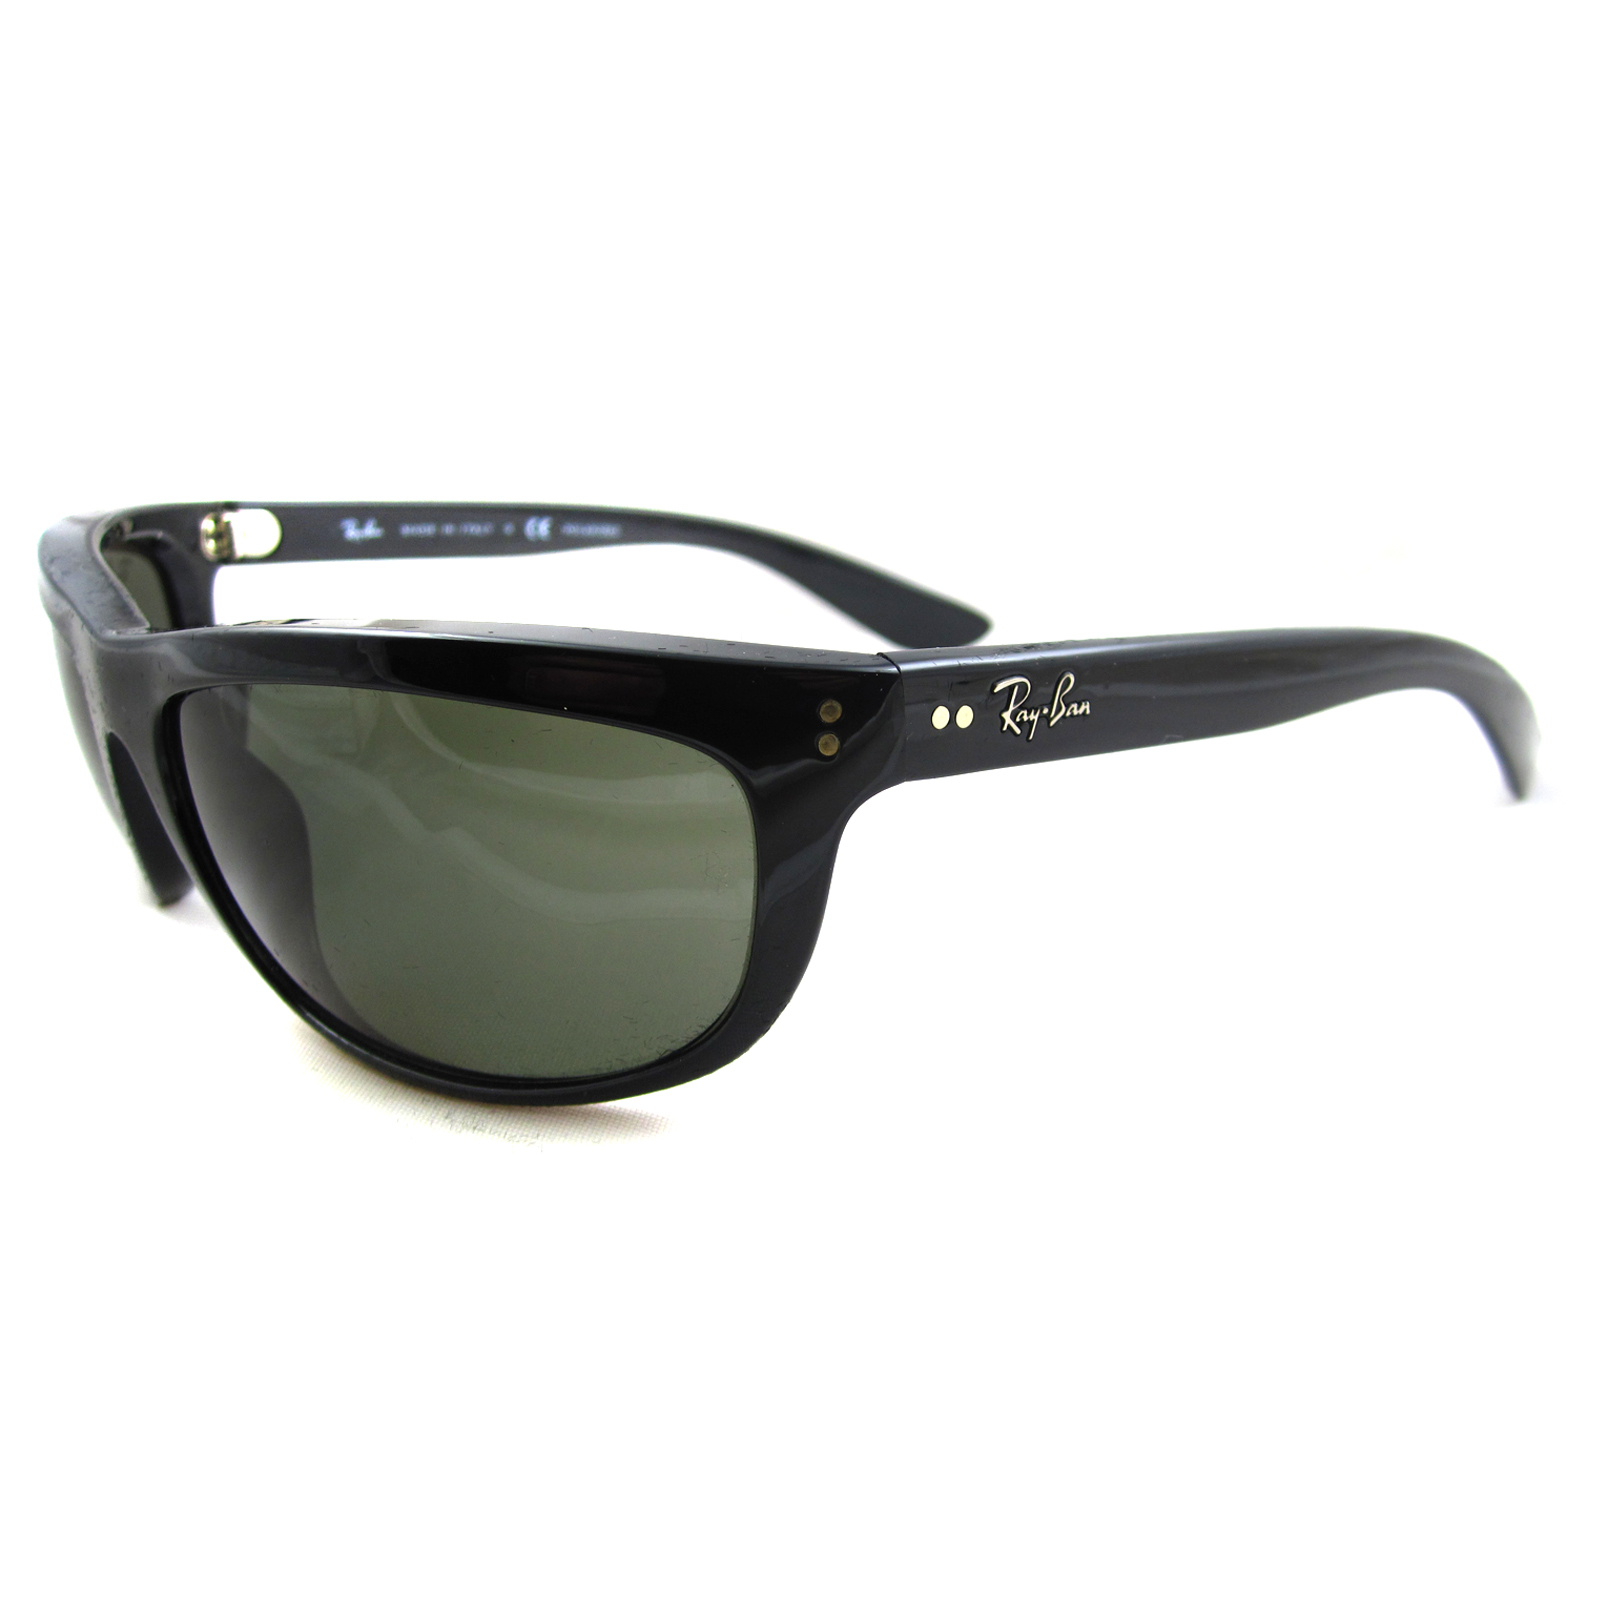 8309cfc053e Sentinel Rayban Sunglasses Balorama 4089 601 58 Black Polarized